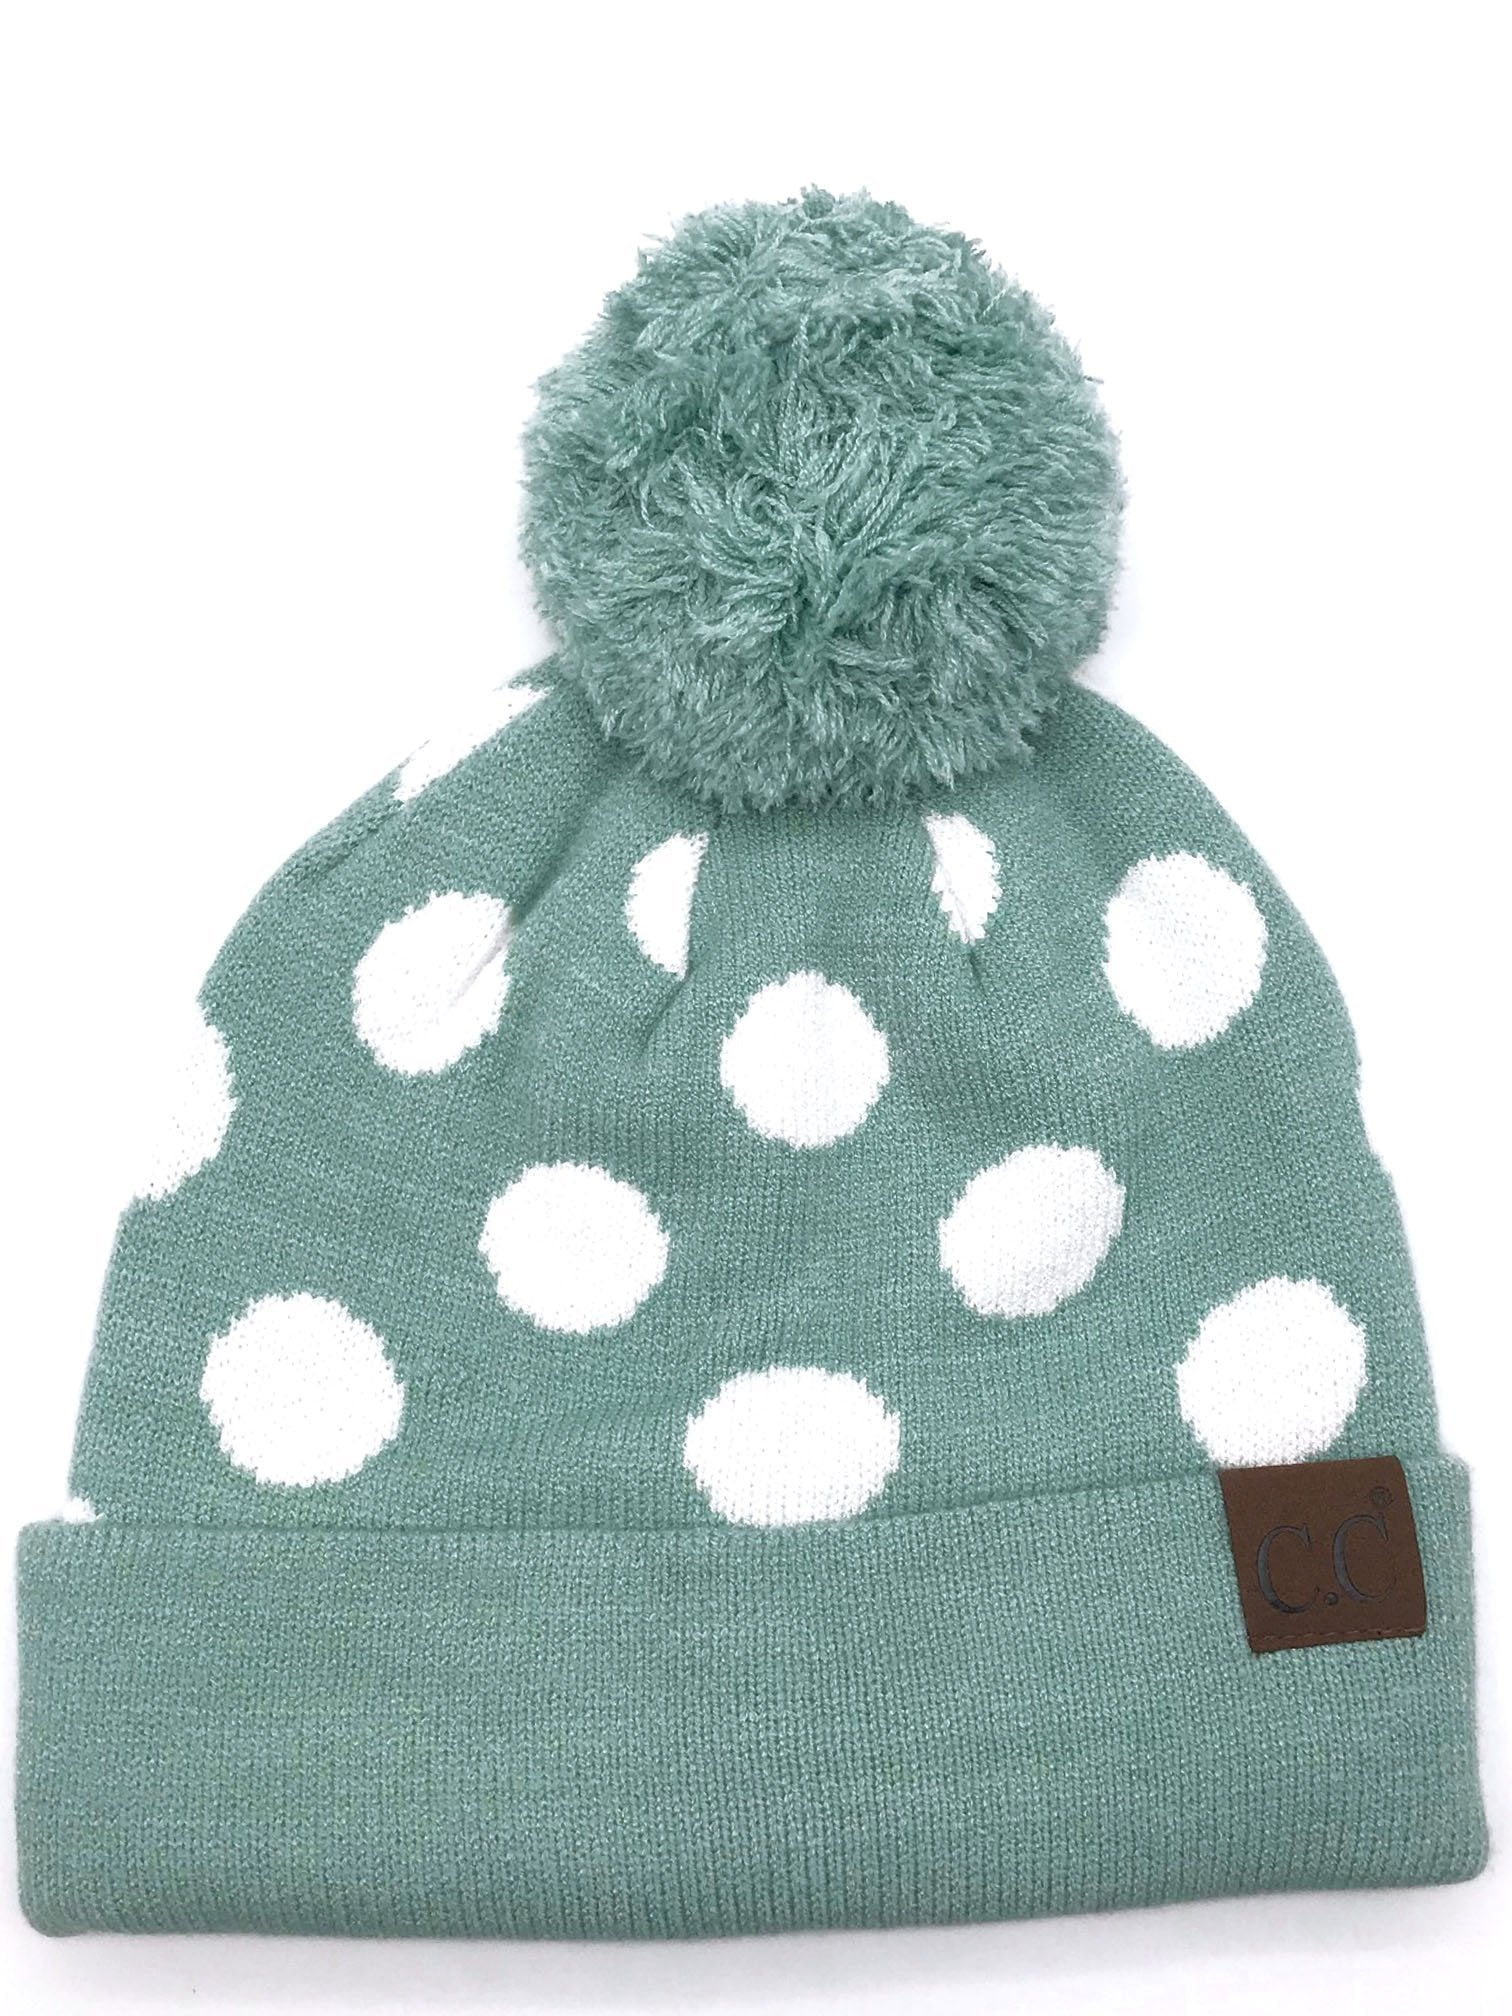 PD-21 Hat Polka Dot Beanie Mint/White